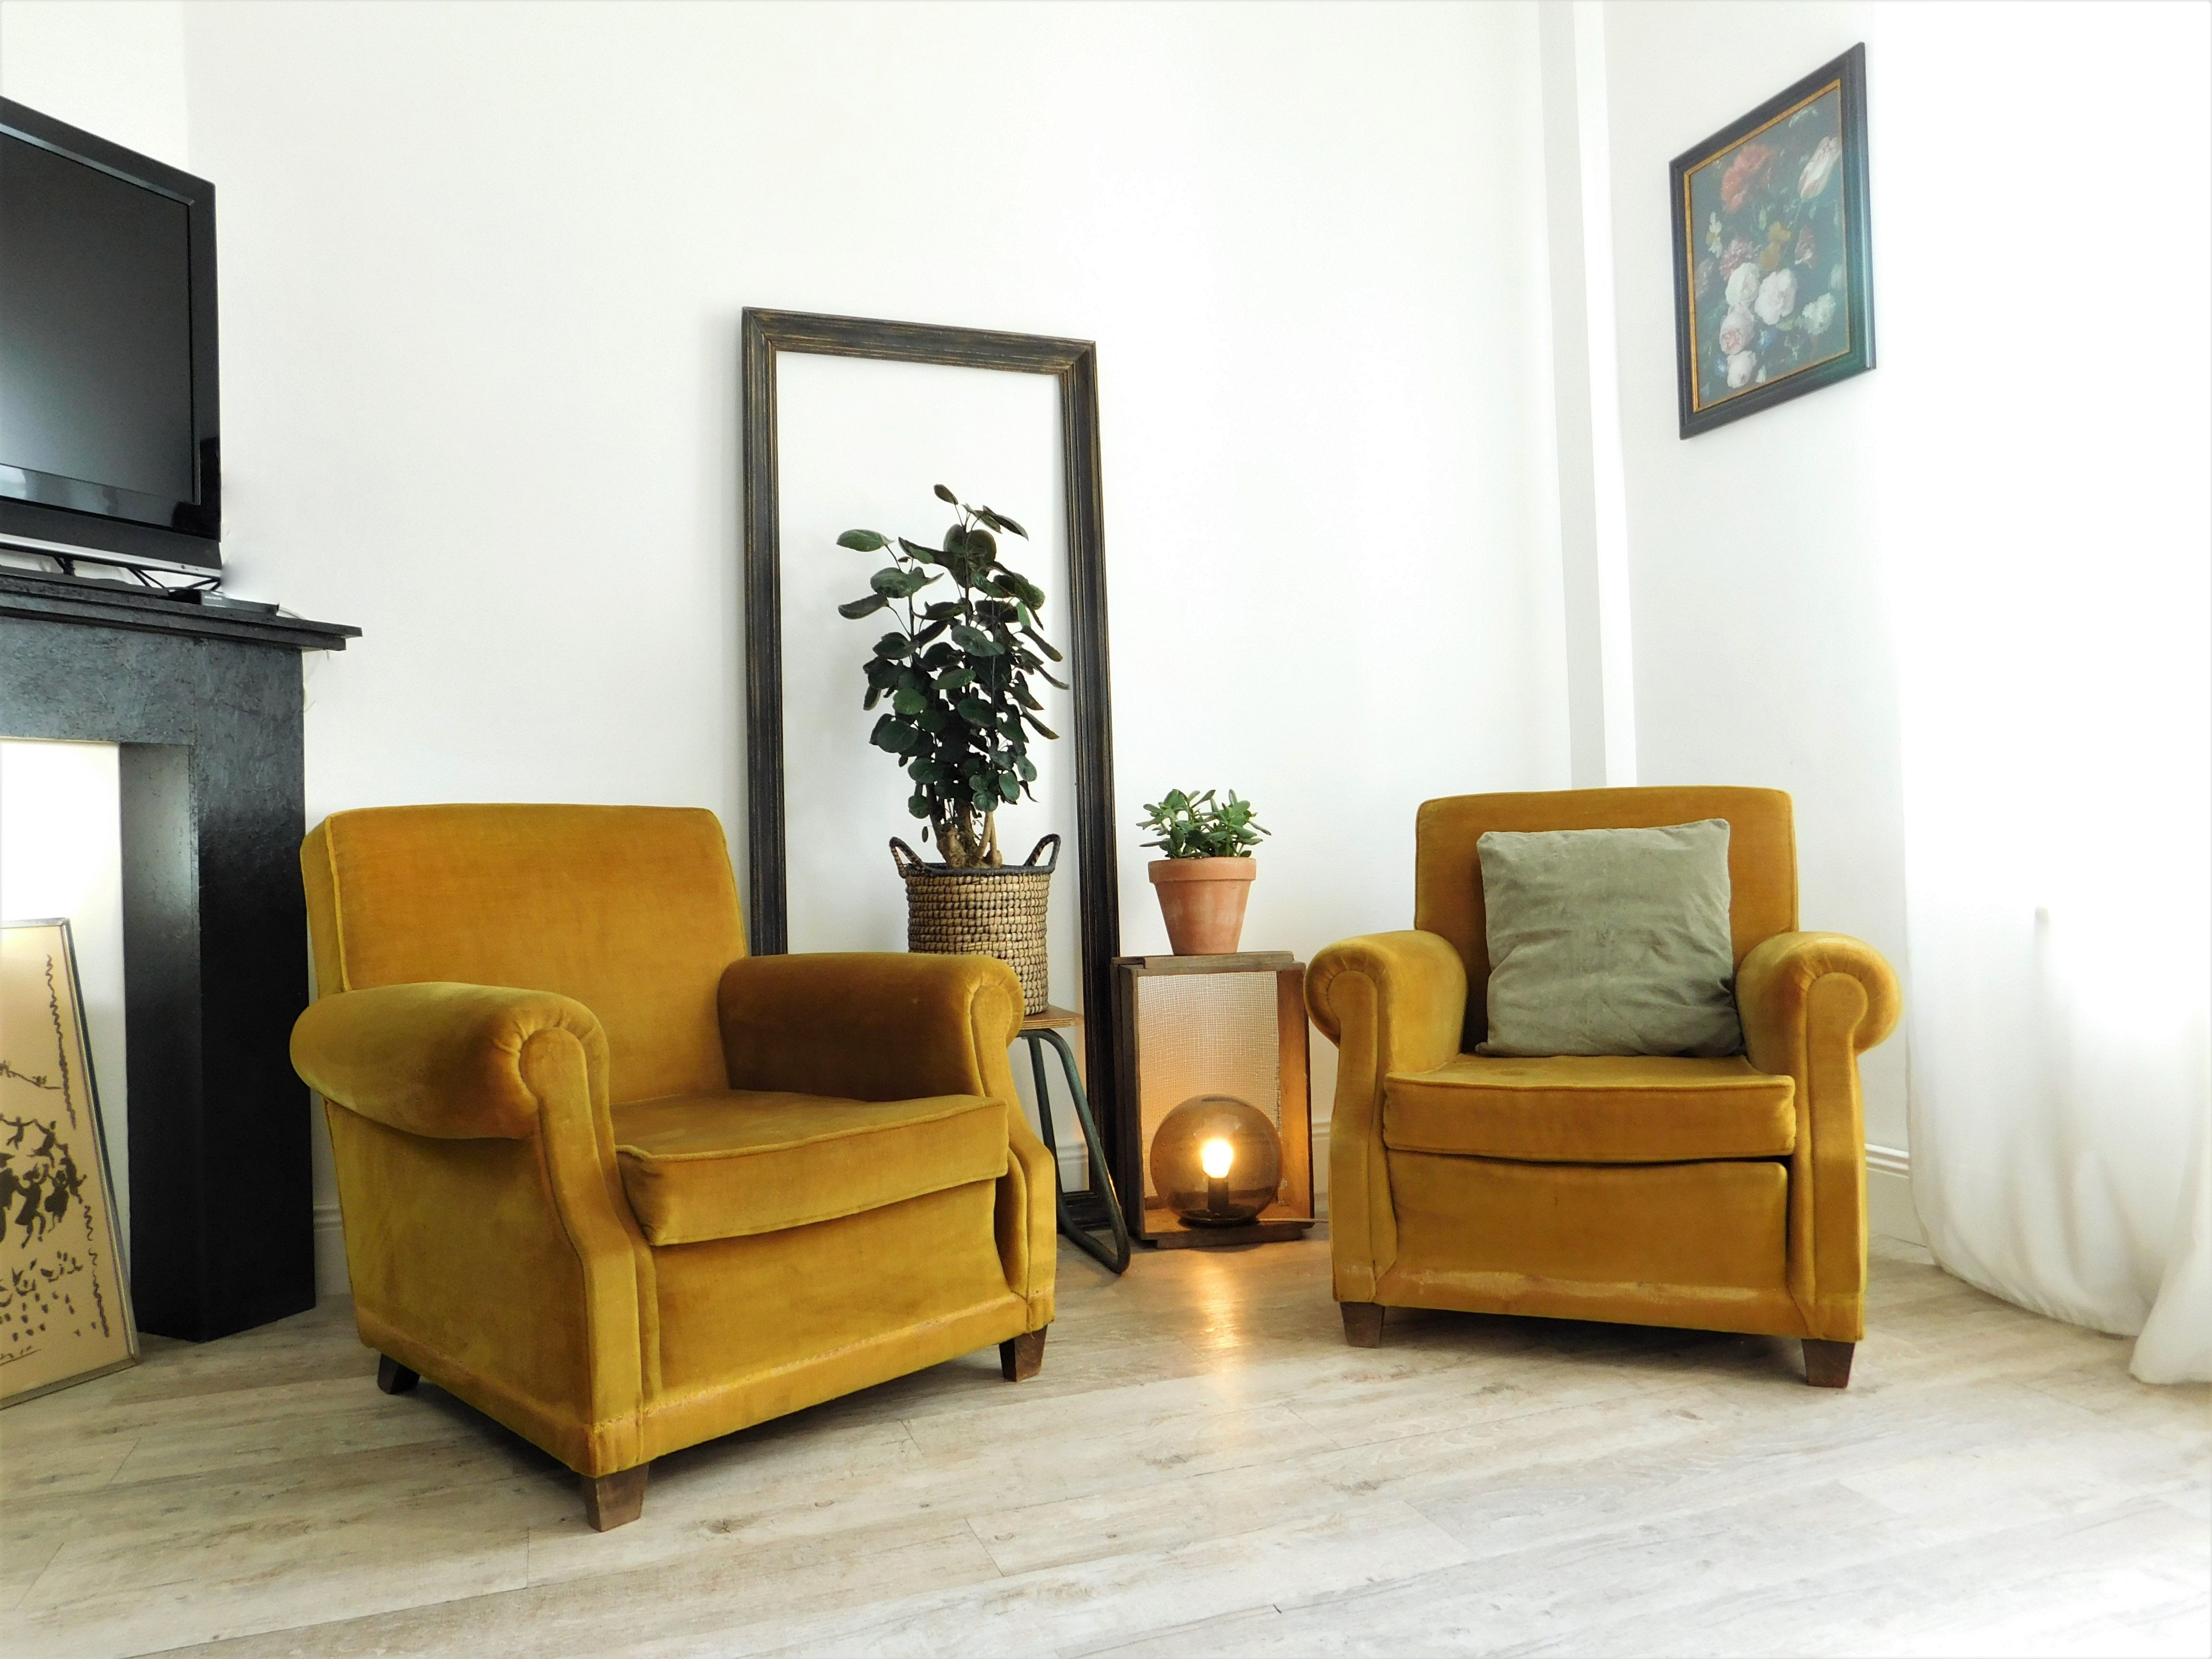 fauteuil velours jaune moutarde vintage deco. Black Bedroom Furniture Sets. Home Design Ideas